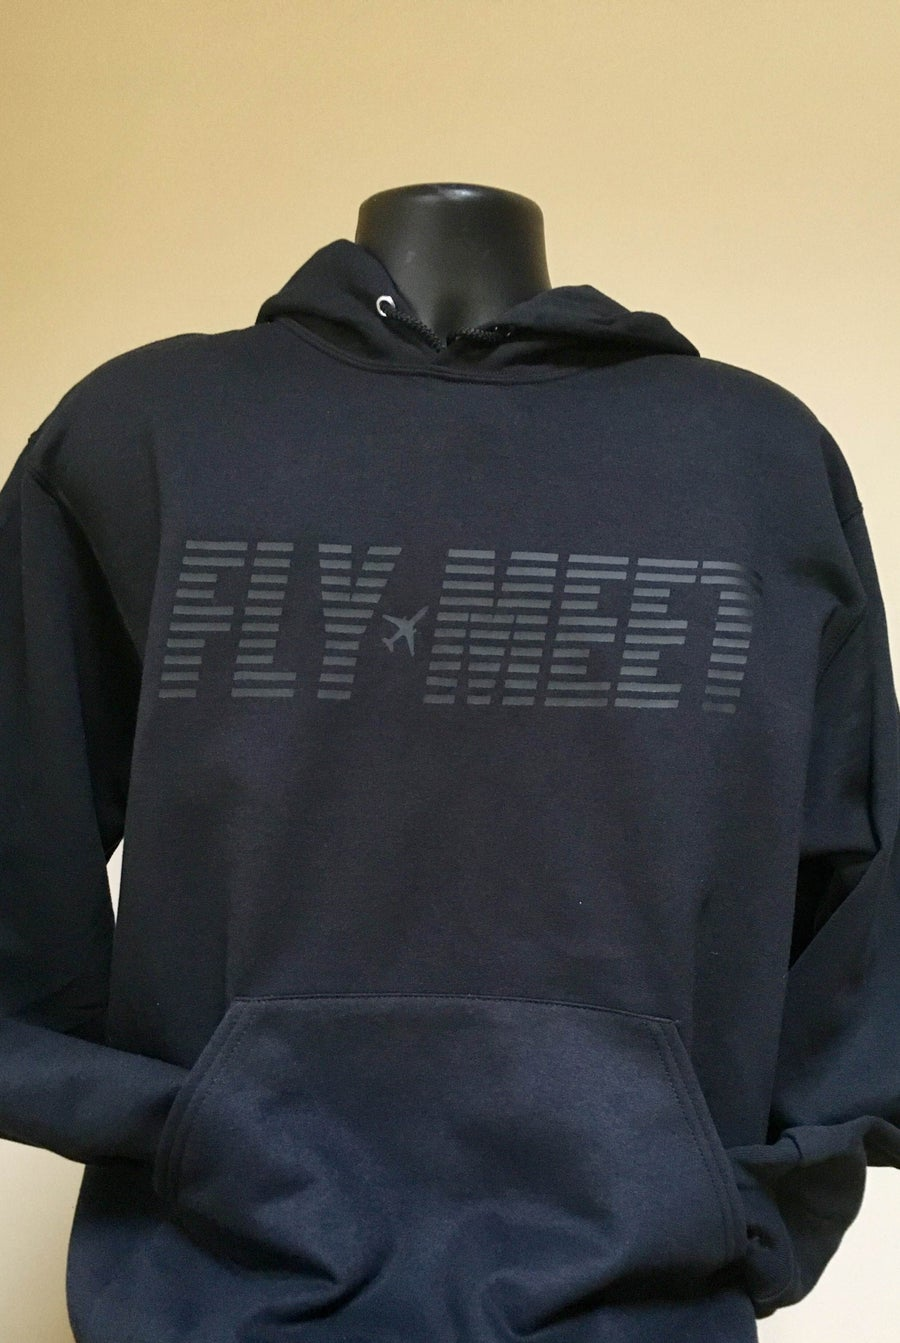 Image of Fly Meet Company - Hooded Sweatshirt (Stealth Bomber)